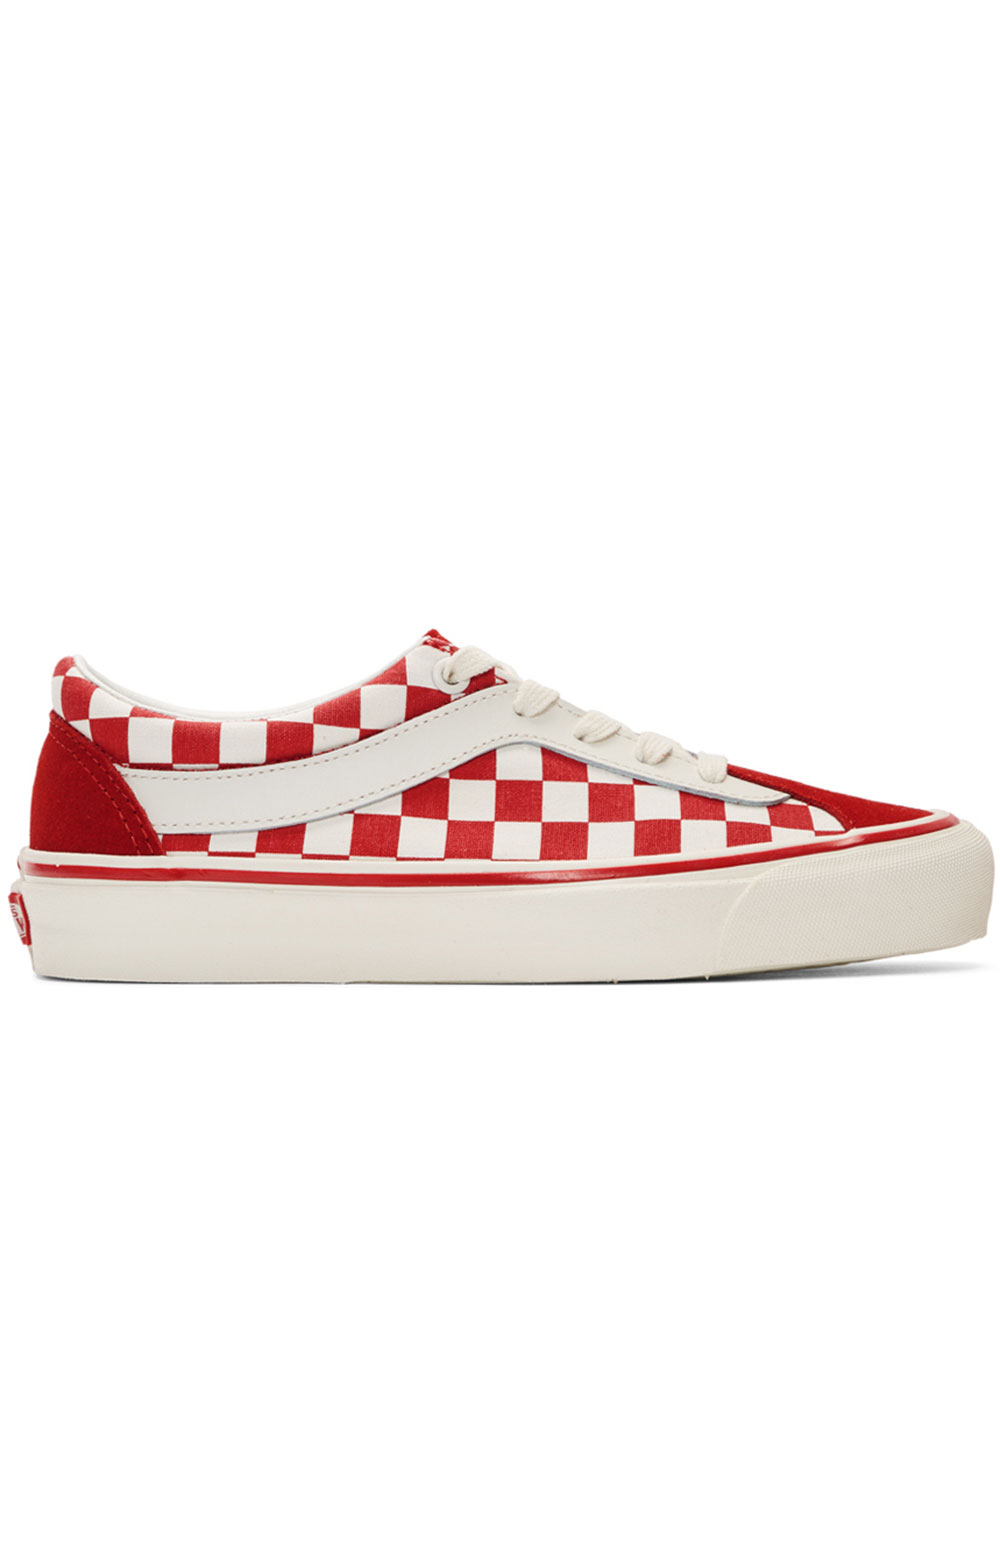 (WLPT1E) Checkerboard Bold Ni Shoe - Red/White